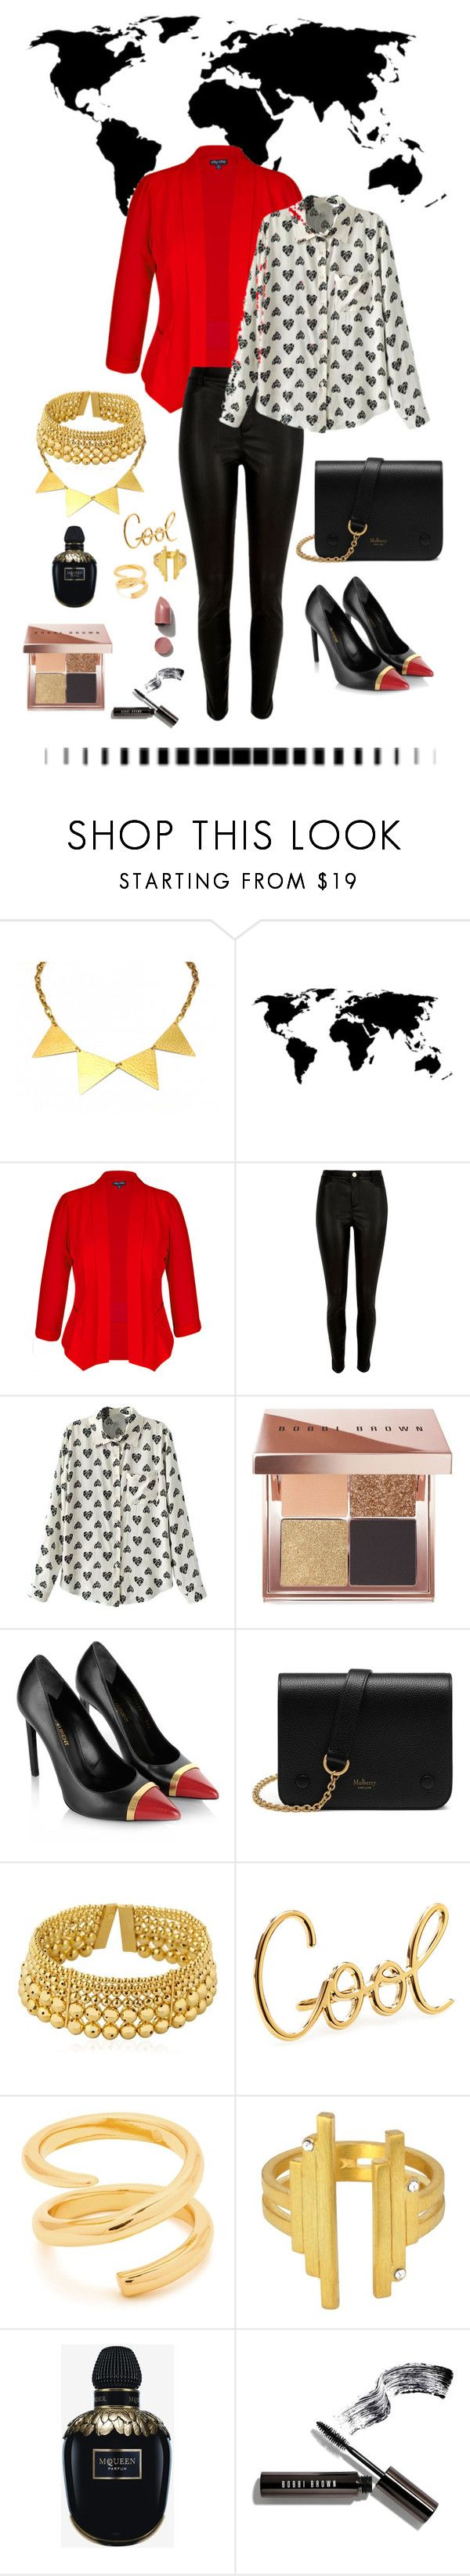 """World wide"" by little-me1 ❤ liked on Polyvore featuring Zara Taylor, City Chic, River Island, Bobbi Brown Cosmetics, Yves Saint Laurent, Mulberry, Paula Mendoza, Lanvin, Gorjana and CHARLOTTE VALKENIERS"